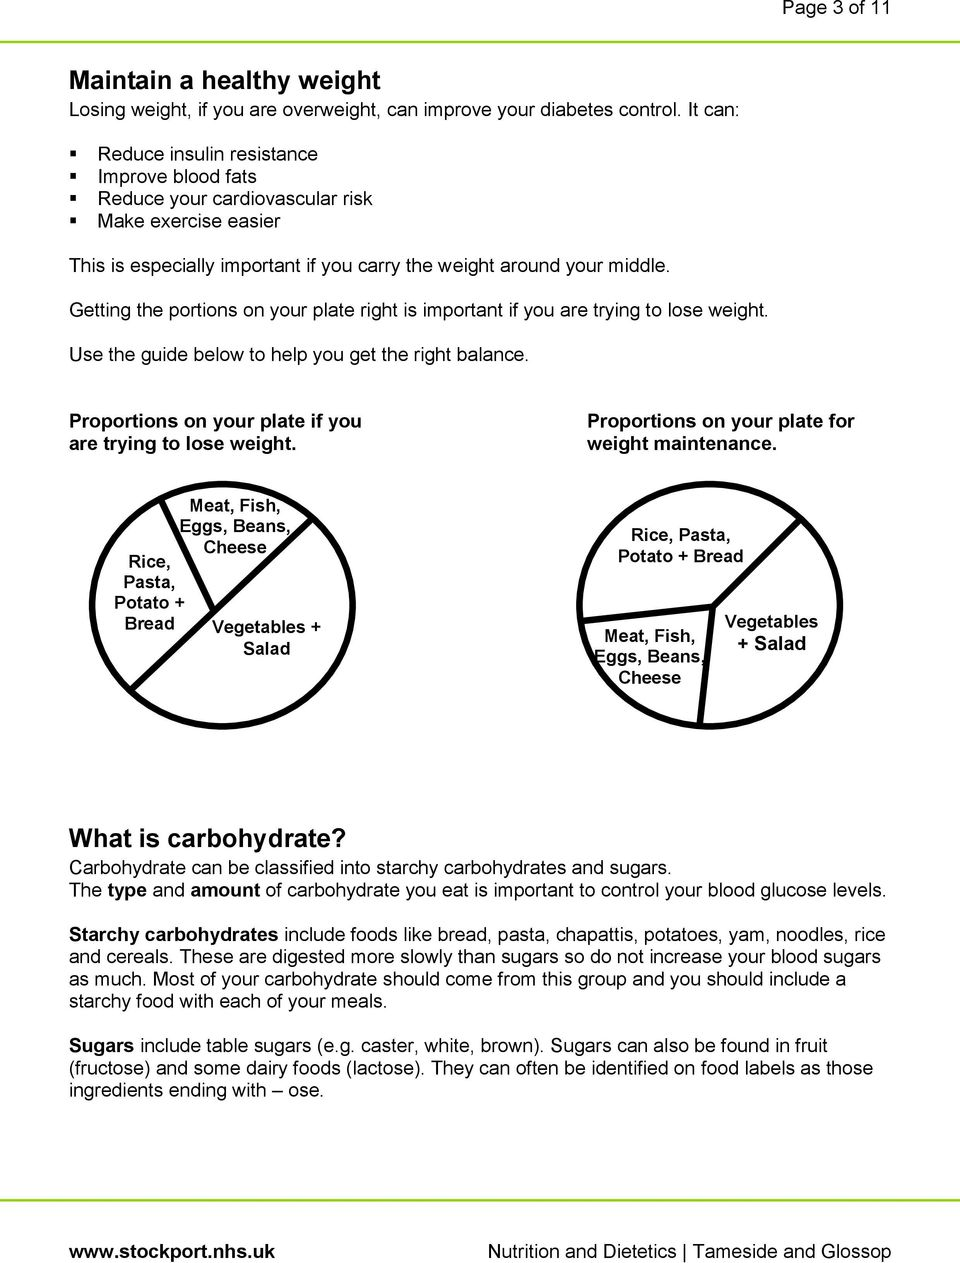 Getting the portions on your plate right is important if you are trying to lose weight. Use the guide below to help you get the right balance.